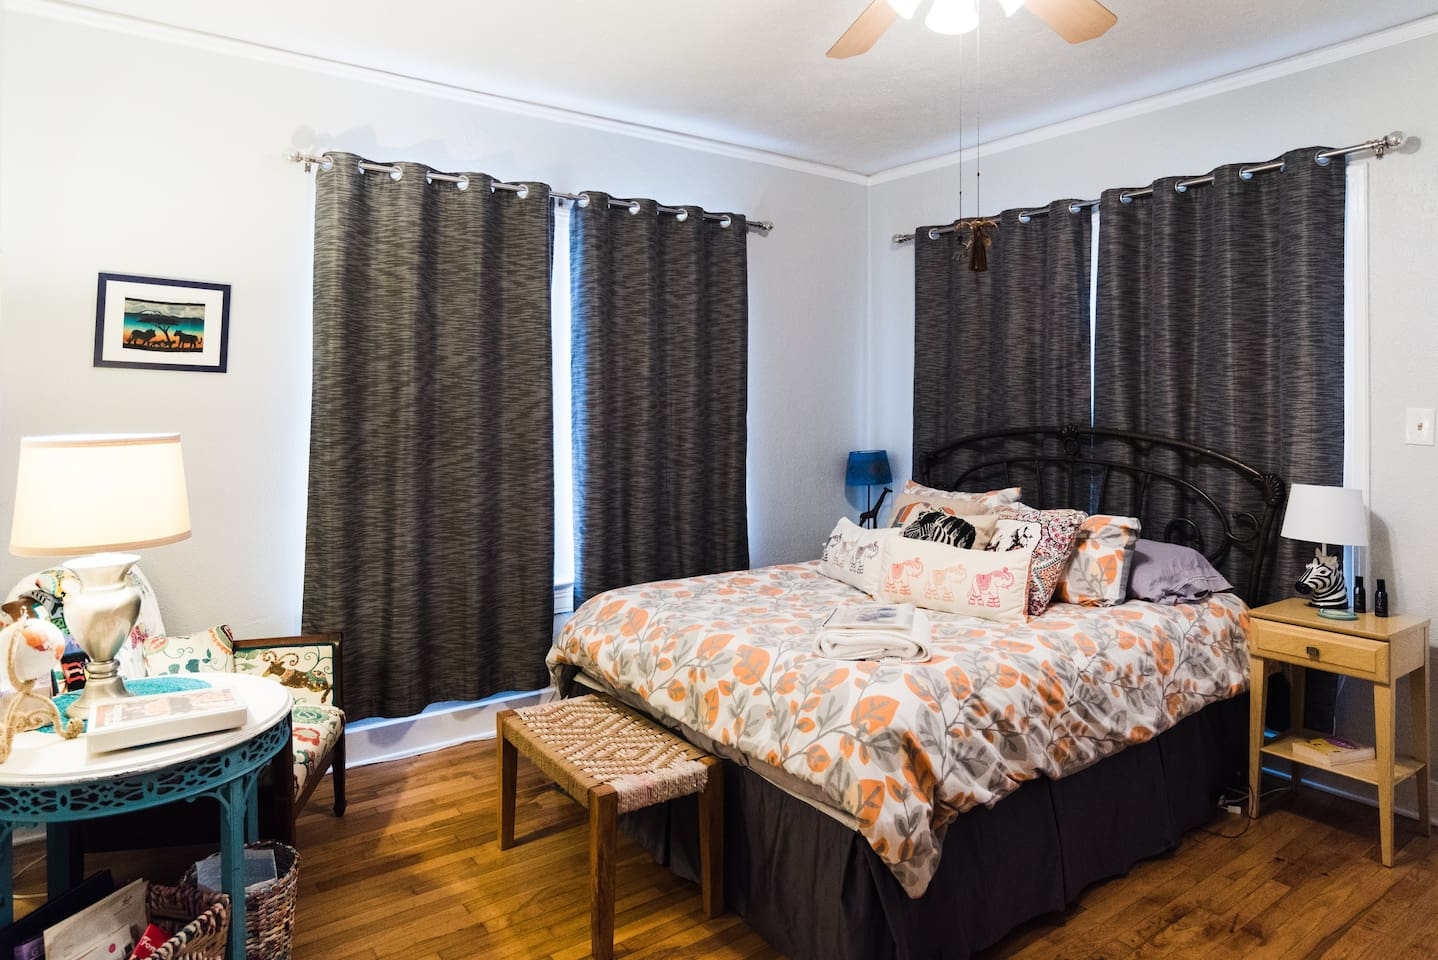 Spacious room with private entrance from the porch. This room features a queen bed, reading nook, desk, luggage rack, and full closet with set of drawers.